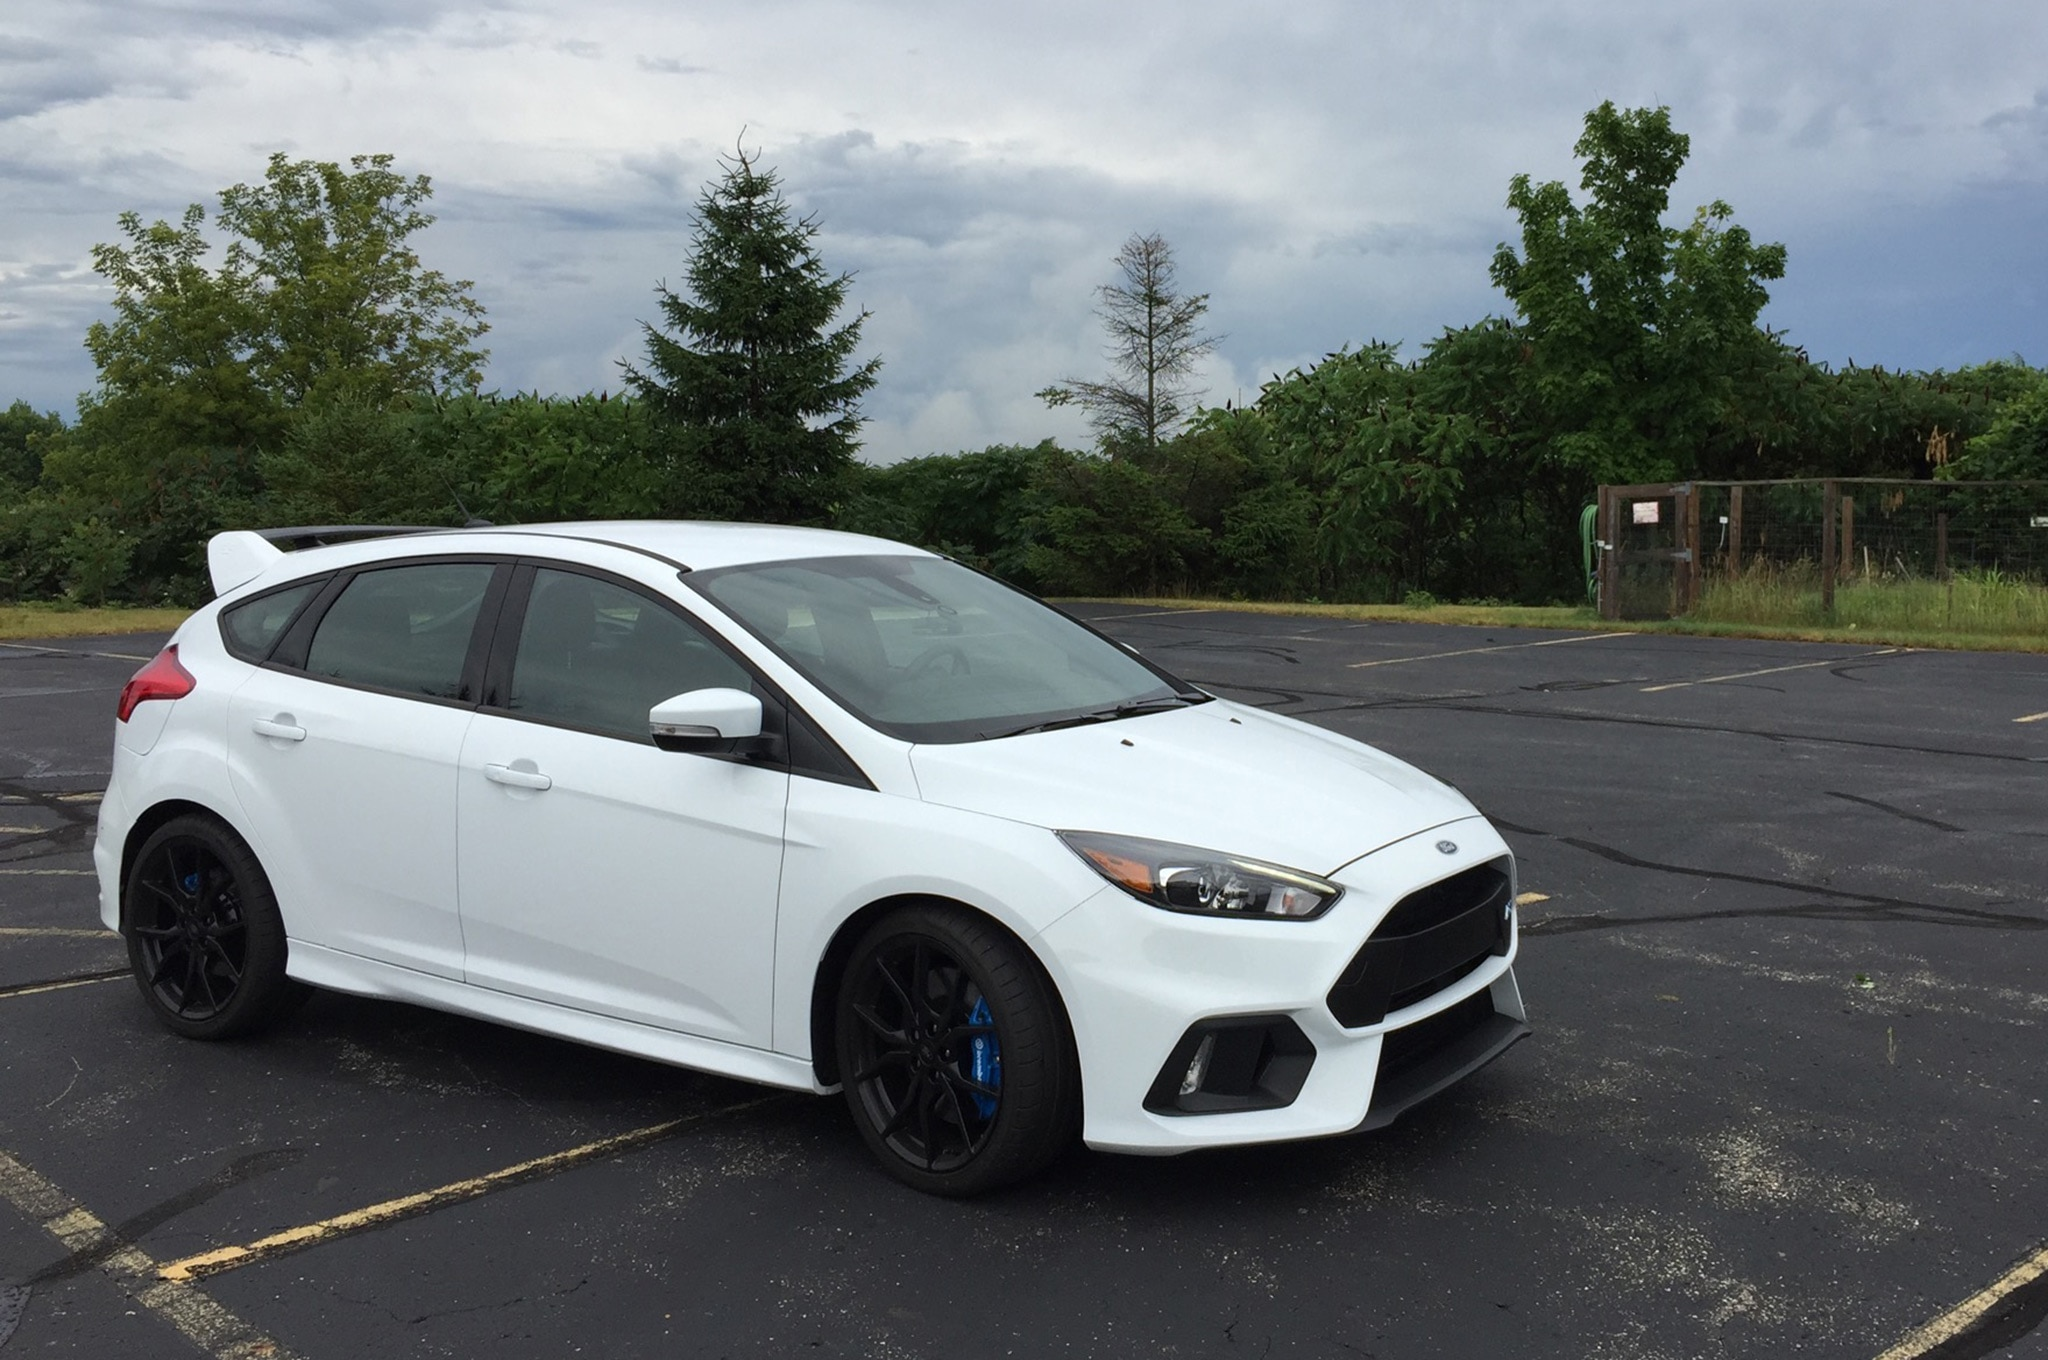 Ford Focus St 0 60 >> 2016 Ford Focus RS: The Ownership Experience, Part 2 ...